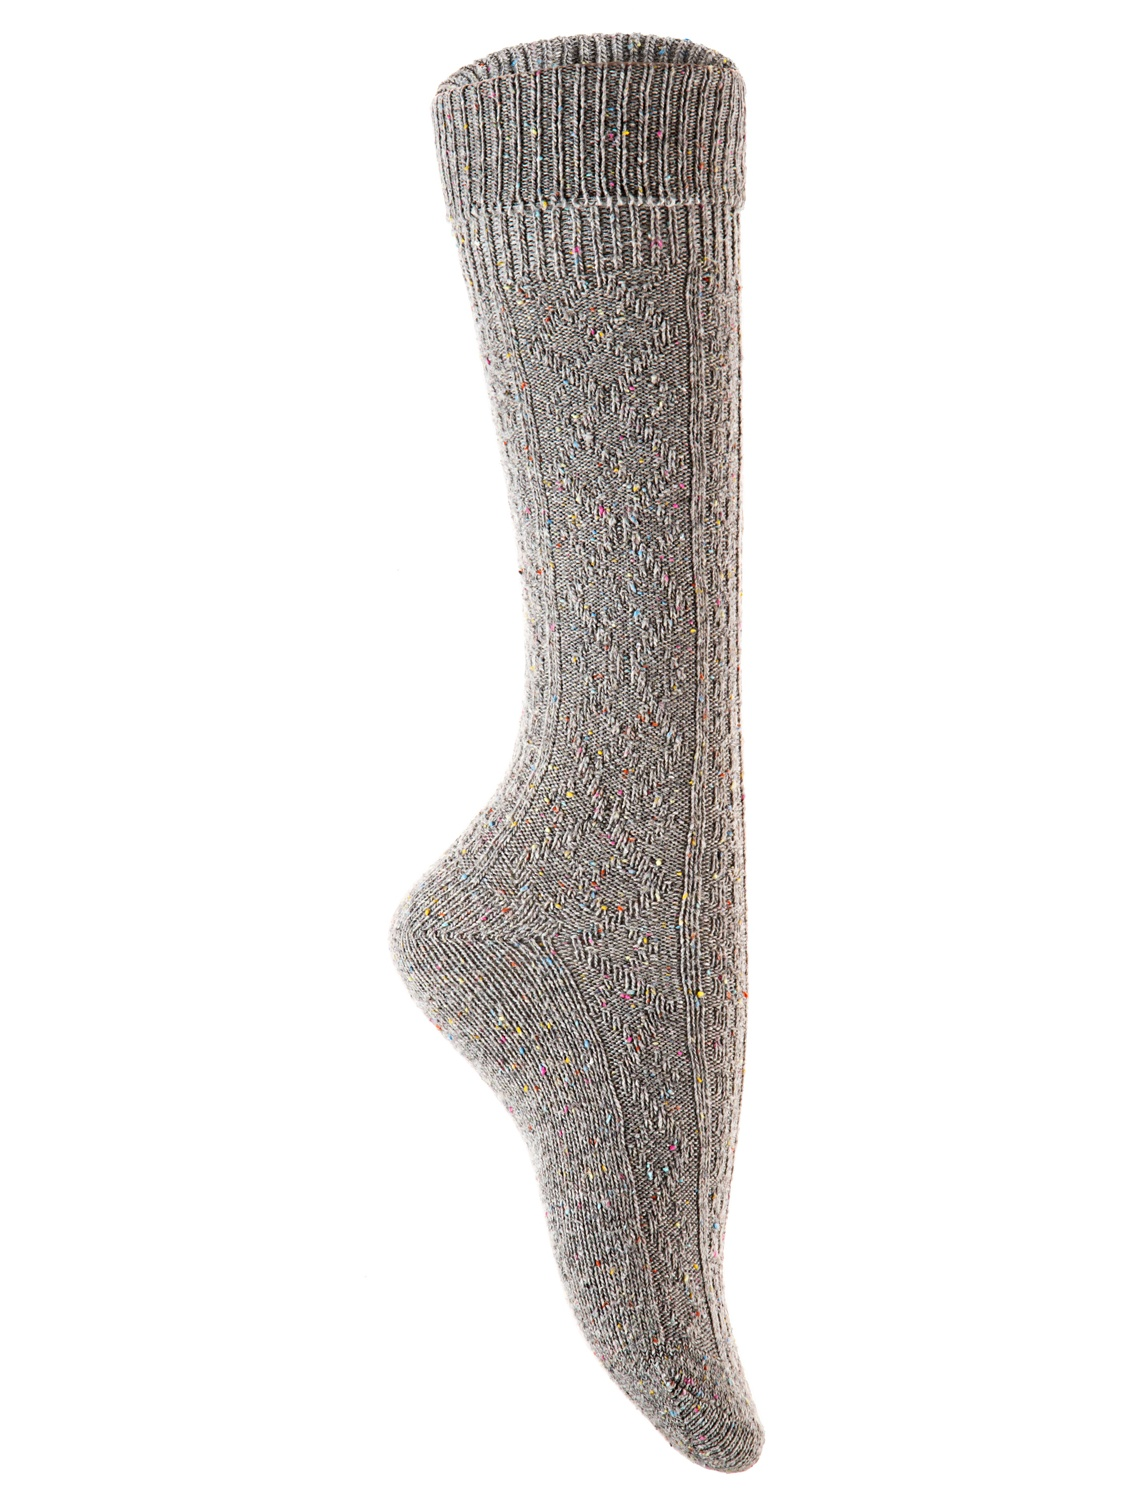 Lian Style Big Girl's 6 Pairs Wool Knee-high Crew Socks Size L (Assorted)